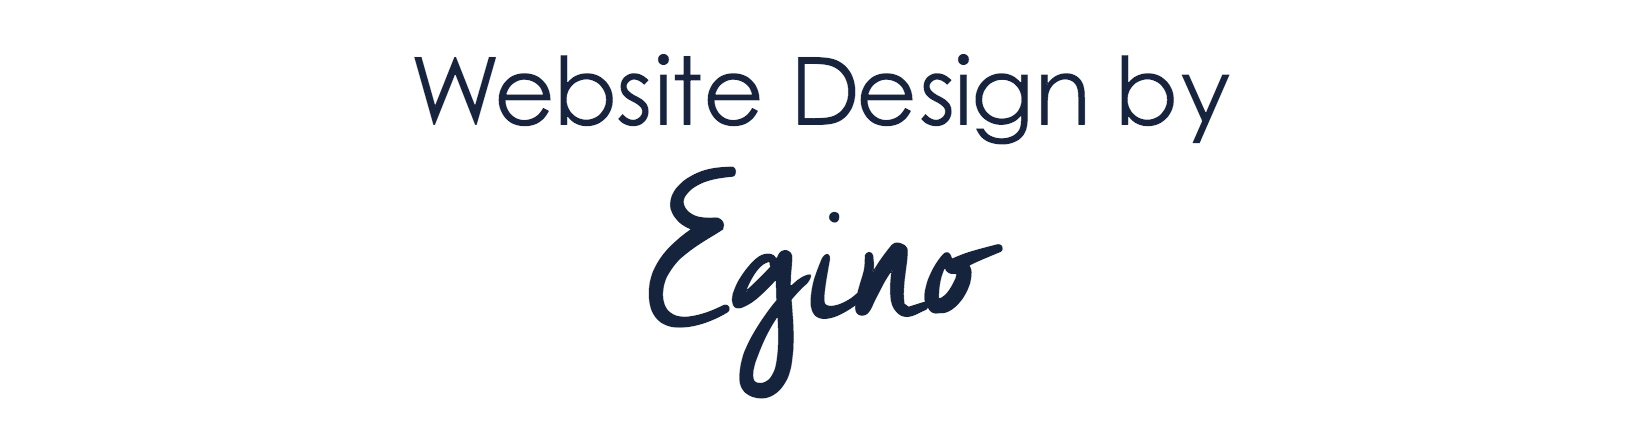 Website Design by Egino.jpg